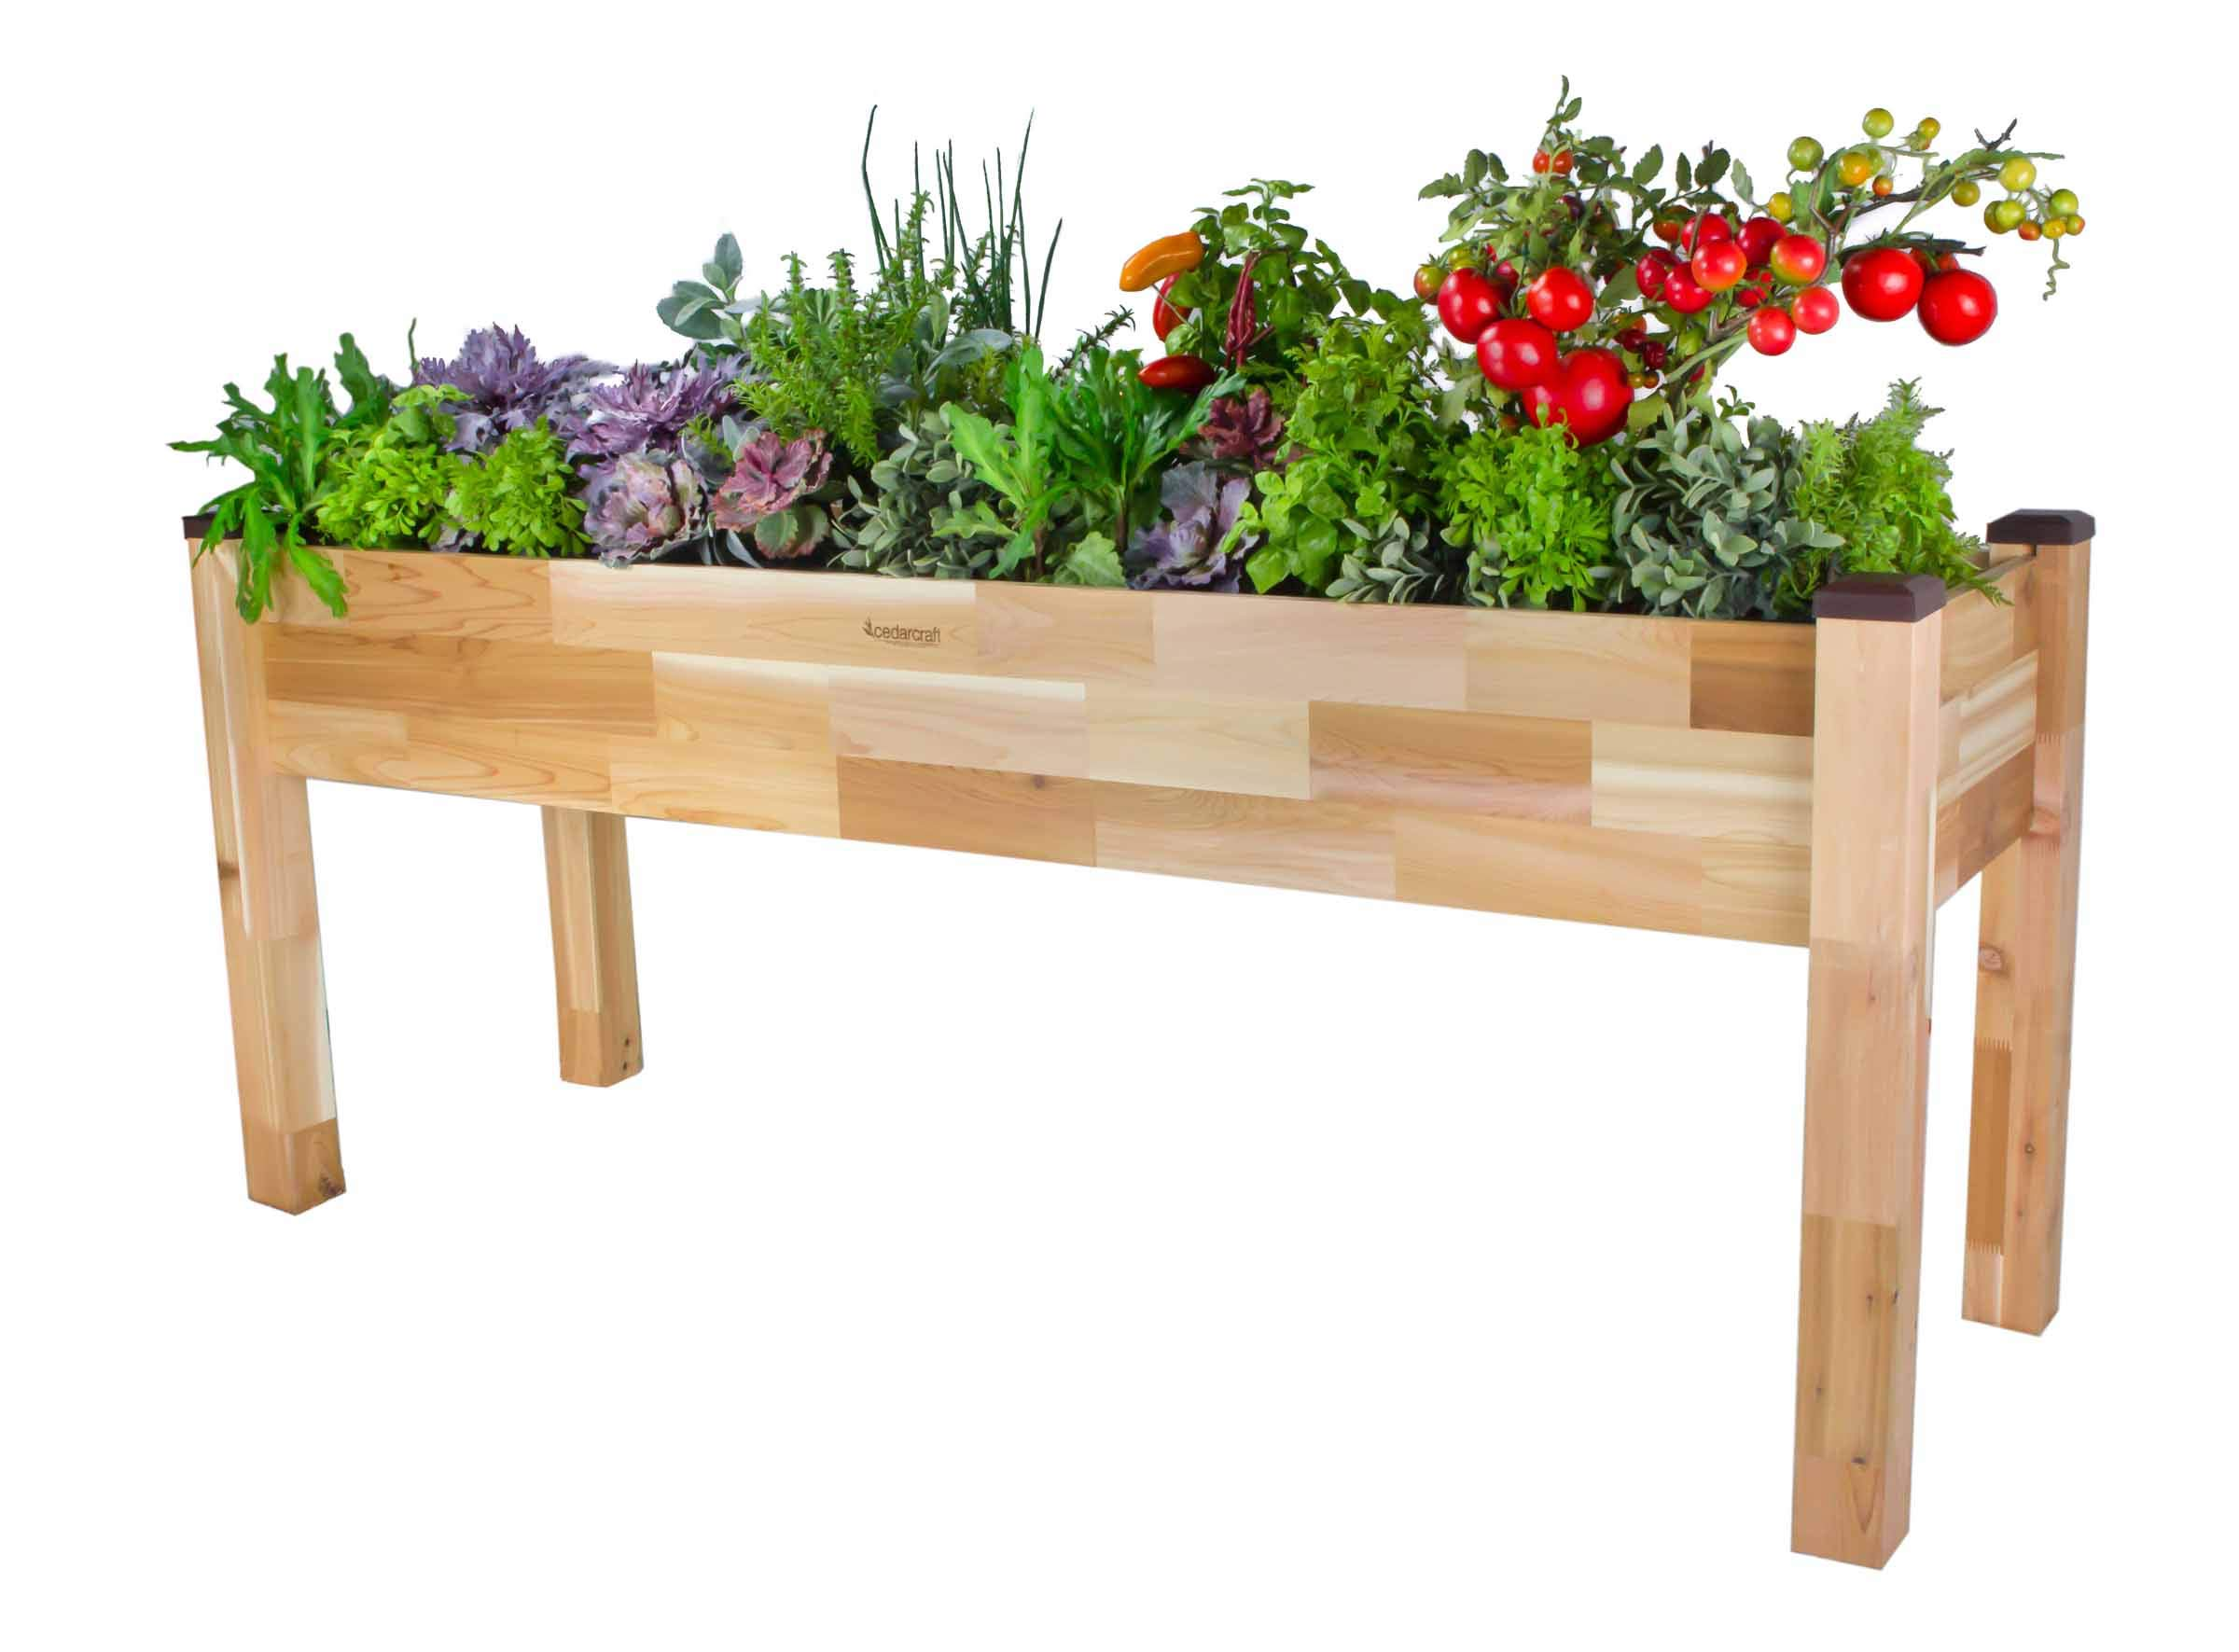 CedarCraft Elevated Cedar Planter (23'' x 72'' x 30''H) - Grow Fresh Vegetables, Herb Gardens, Flowers & Succulents. Beautiful Raised Garden Bed for a Deck, Patio or Yard Gardening. Super Easy Assembly